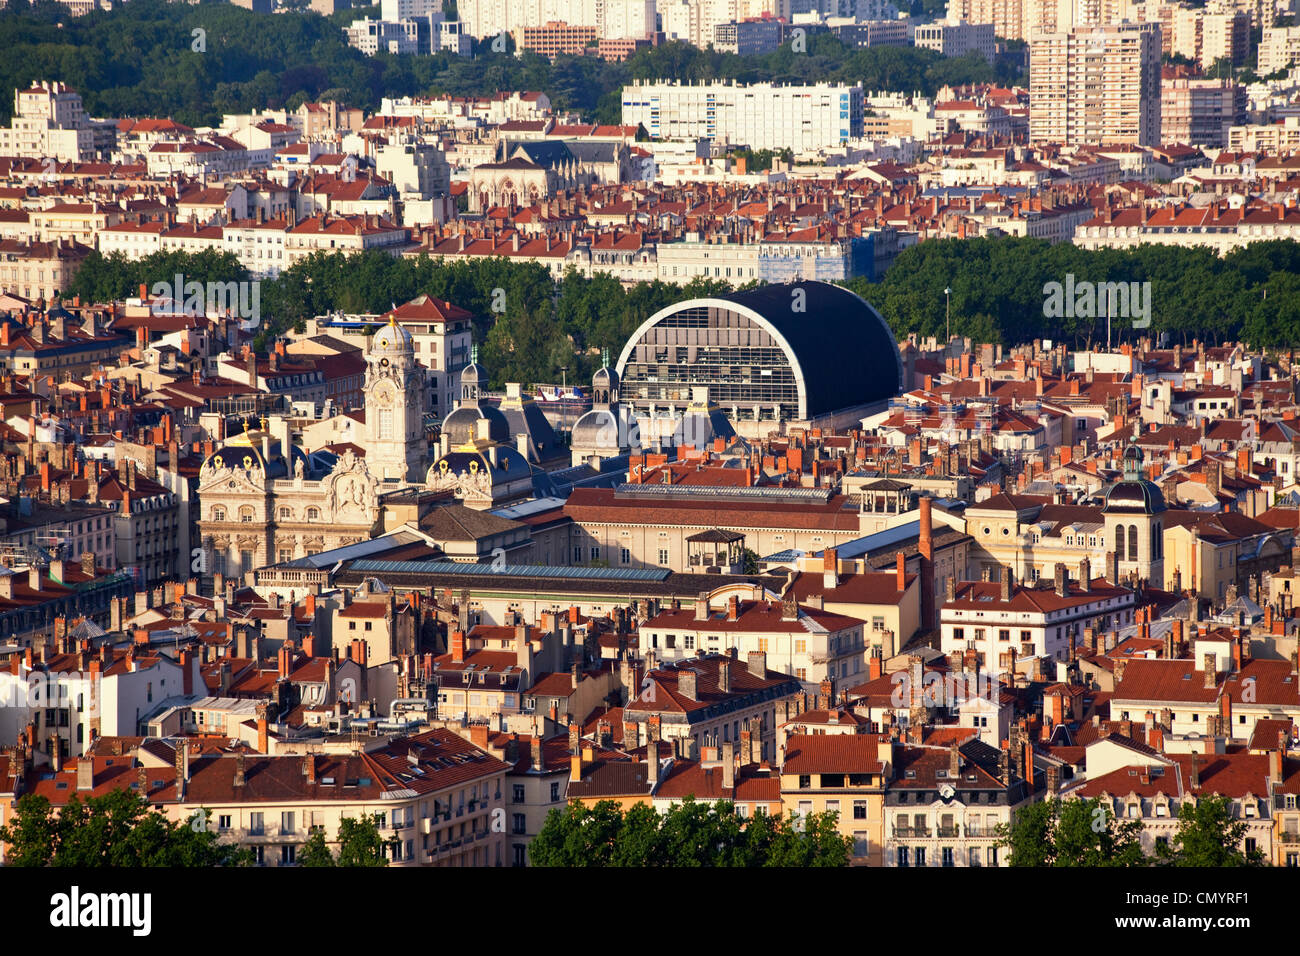 Panoramic view from Viewpoint of Notre Dame de Fourviere hill, Hotel de Ville, Opera, Lyon, Rhone Alps, France - Stock Image